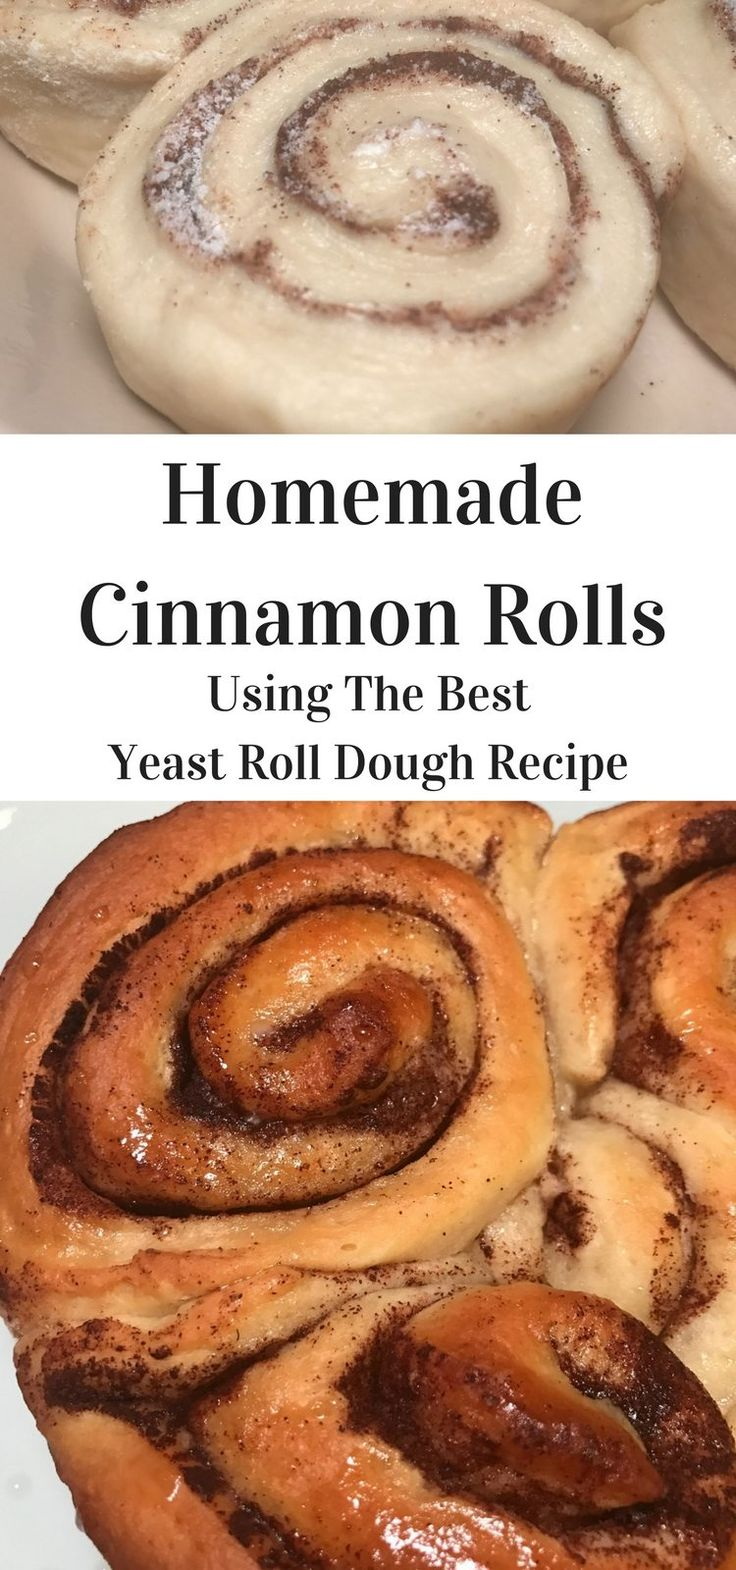 Yummy Homemade Cinnamon Rolls, warm, sweet, gooey and delicious buns of goodness are made from the Best Yeast Roll Dough Recipe!